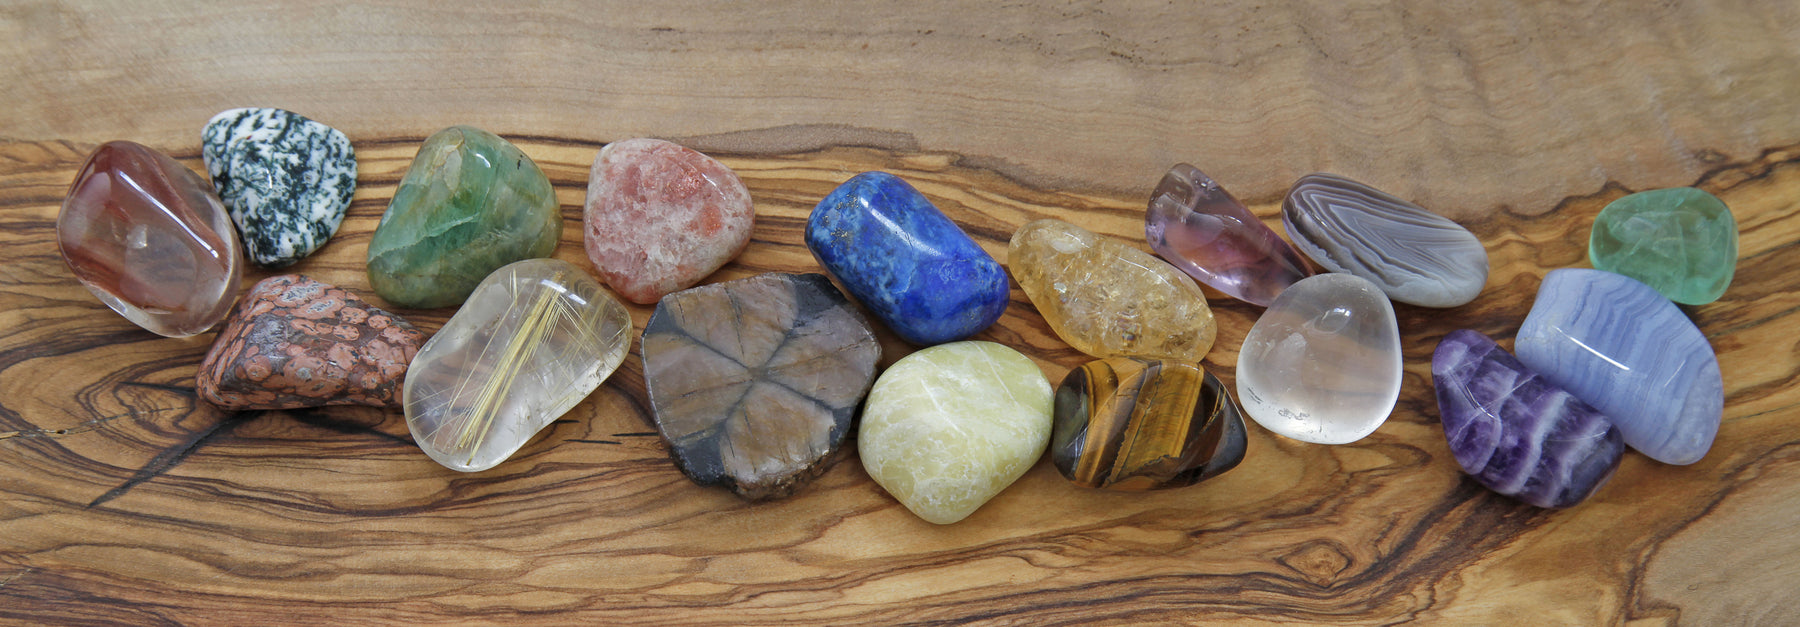 Crystals as Healing Tools in Accordance with the Principle of Vibration by Lune Innate